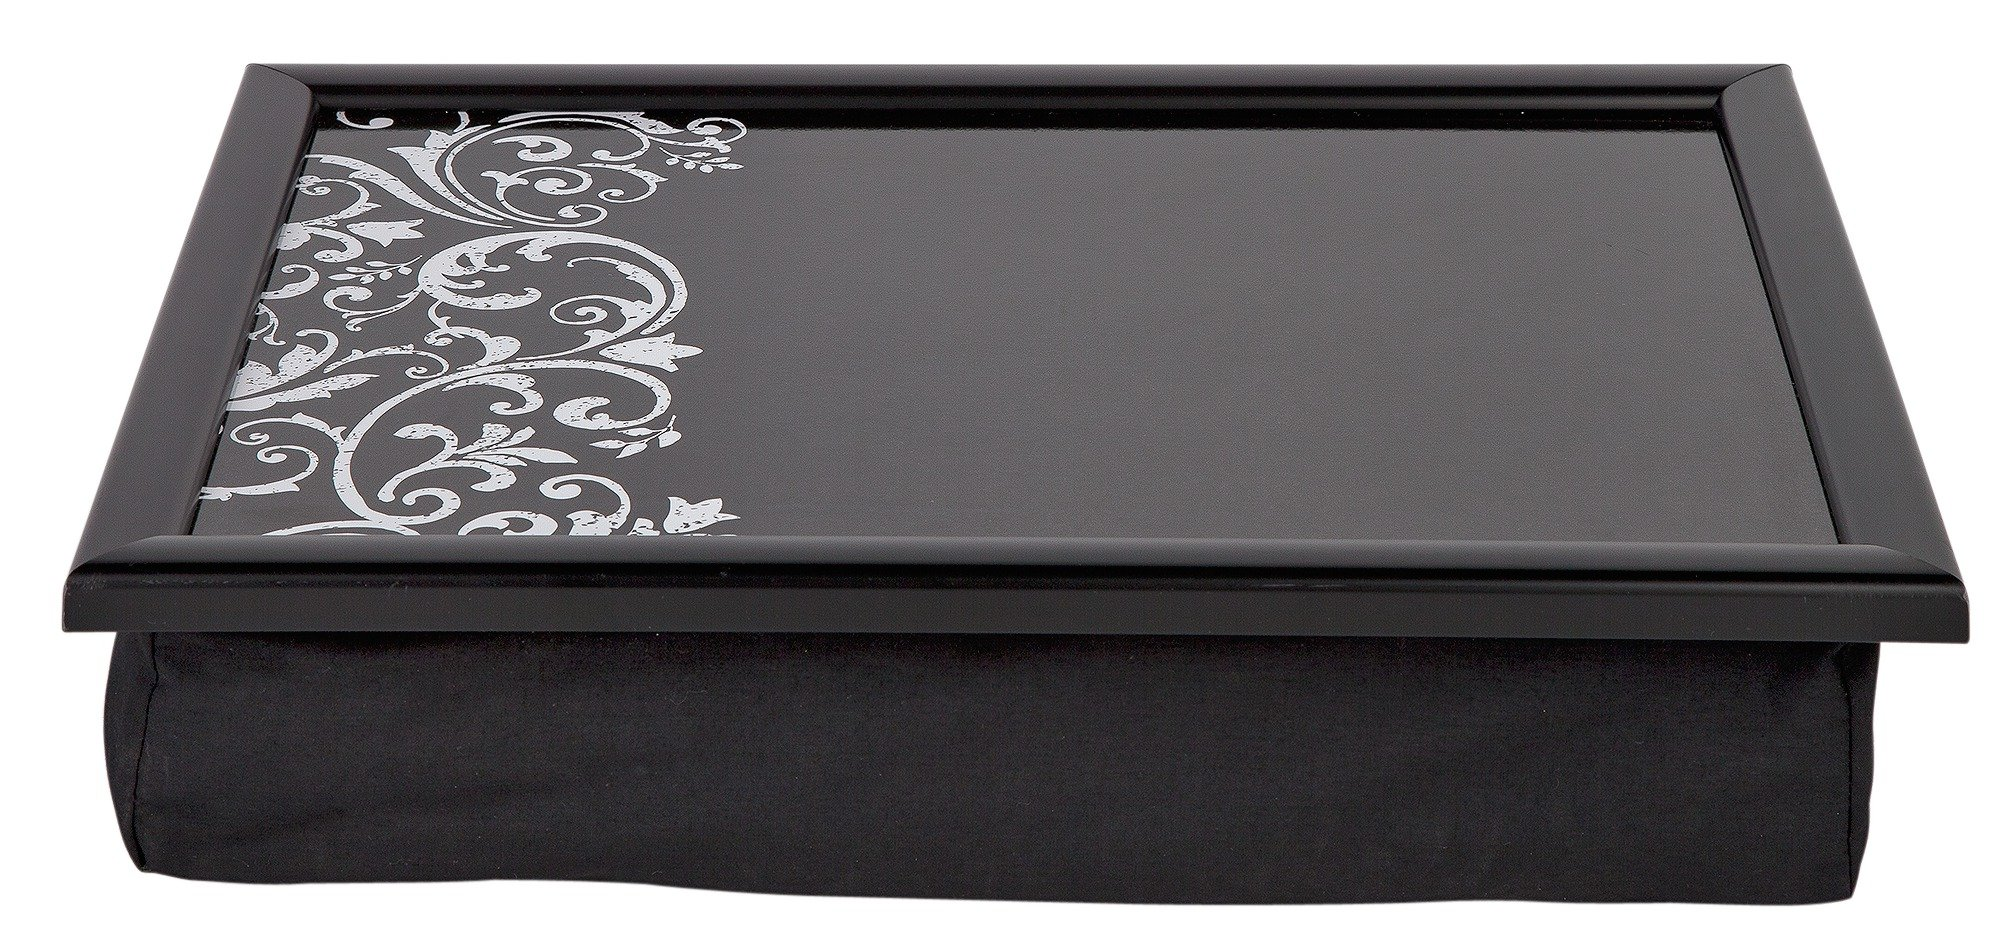 home damask breakfast in bed lap tray